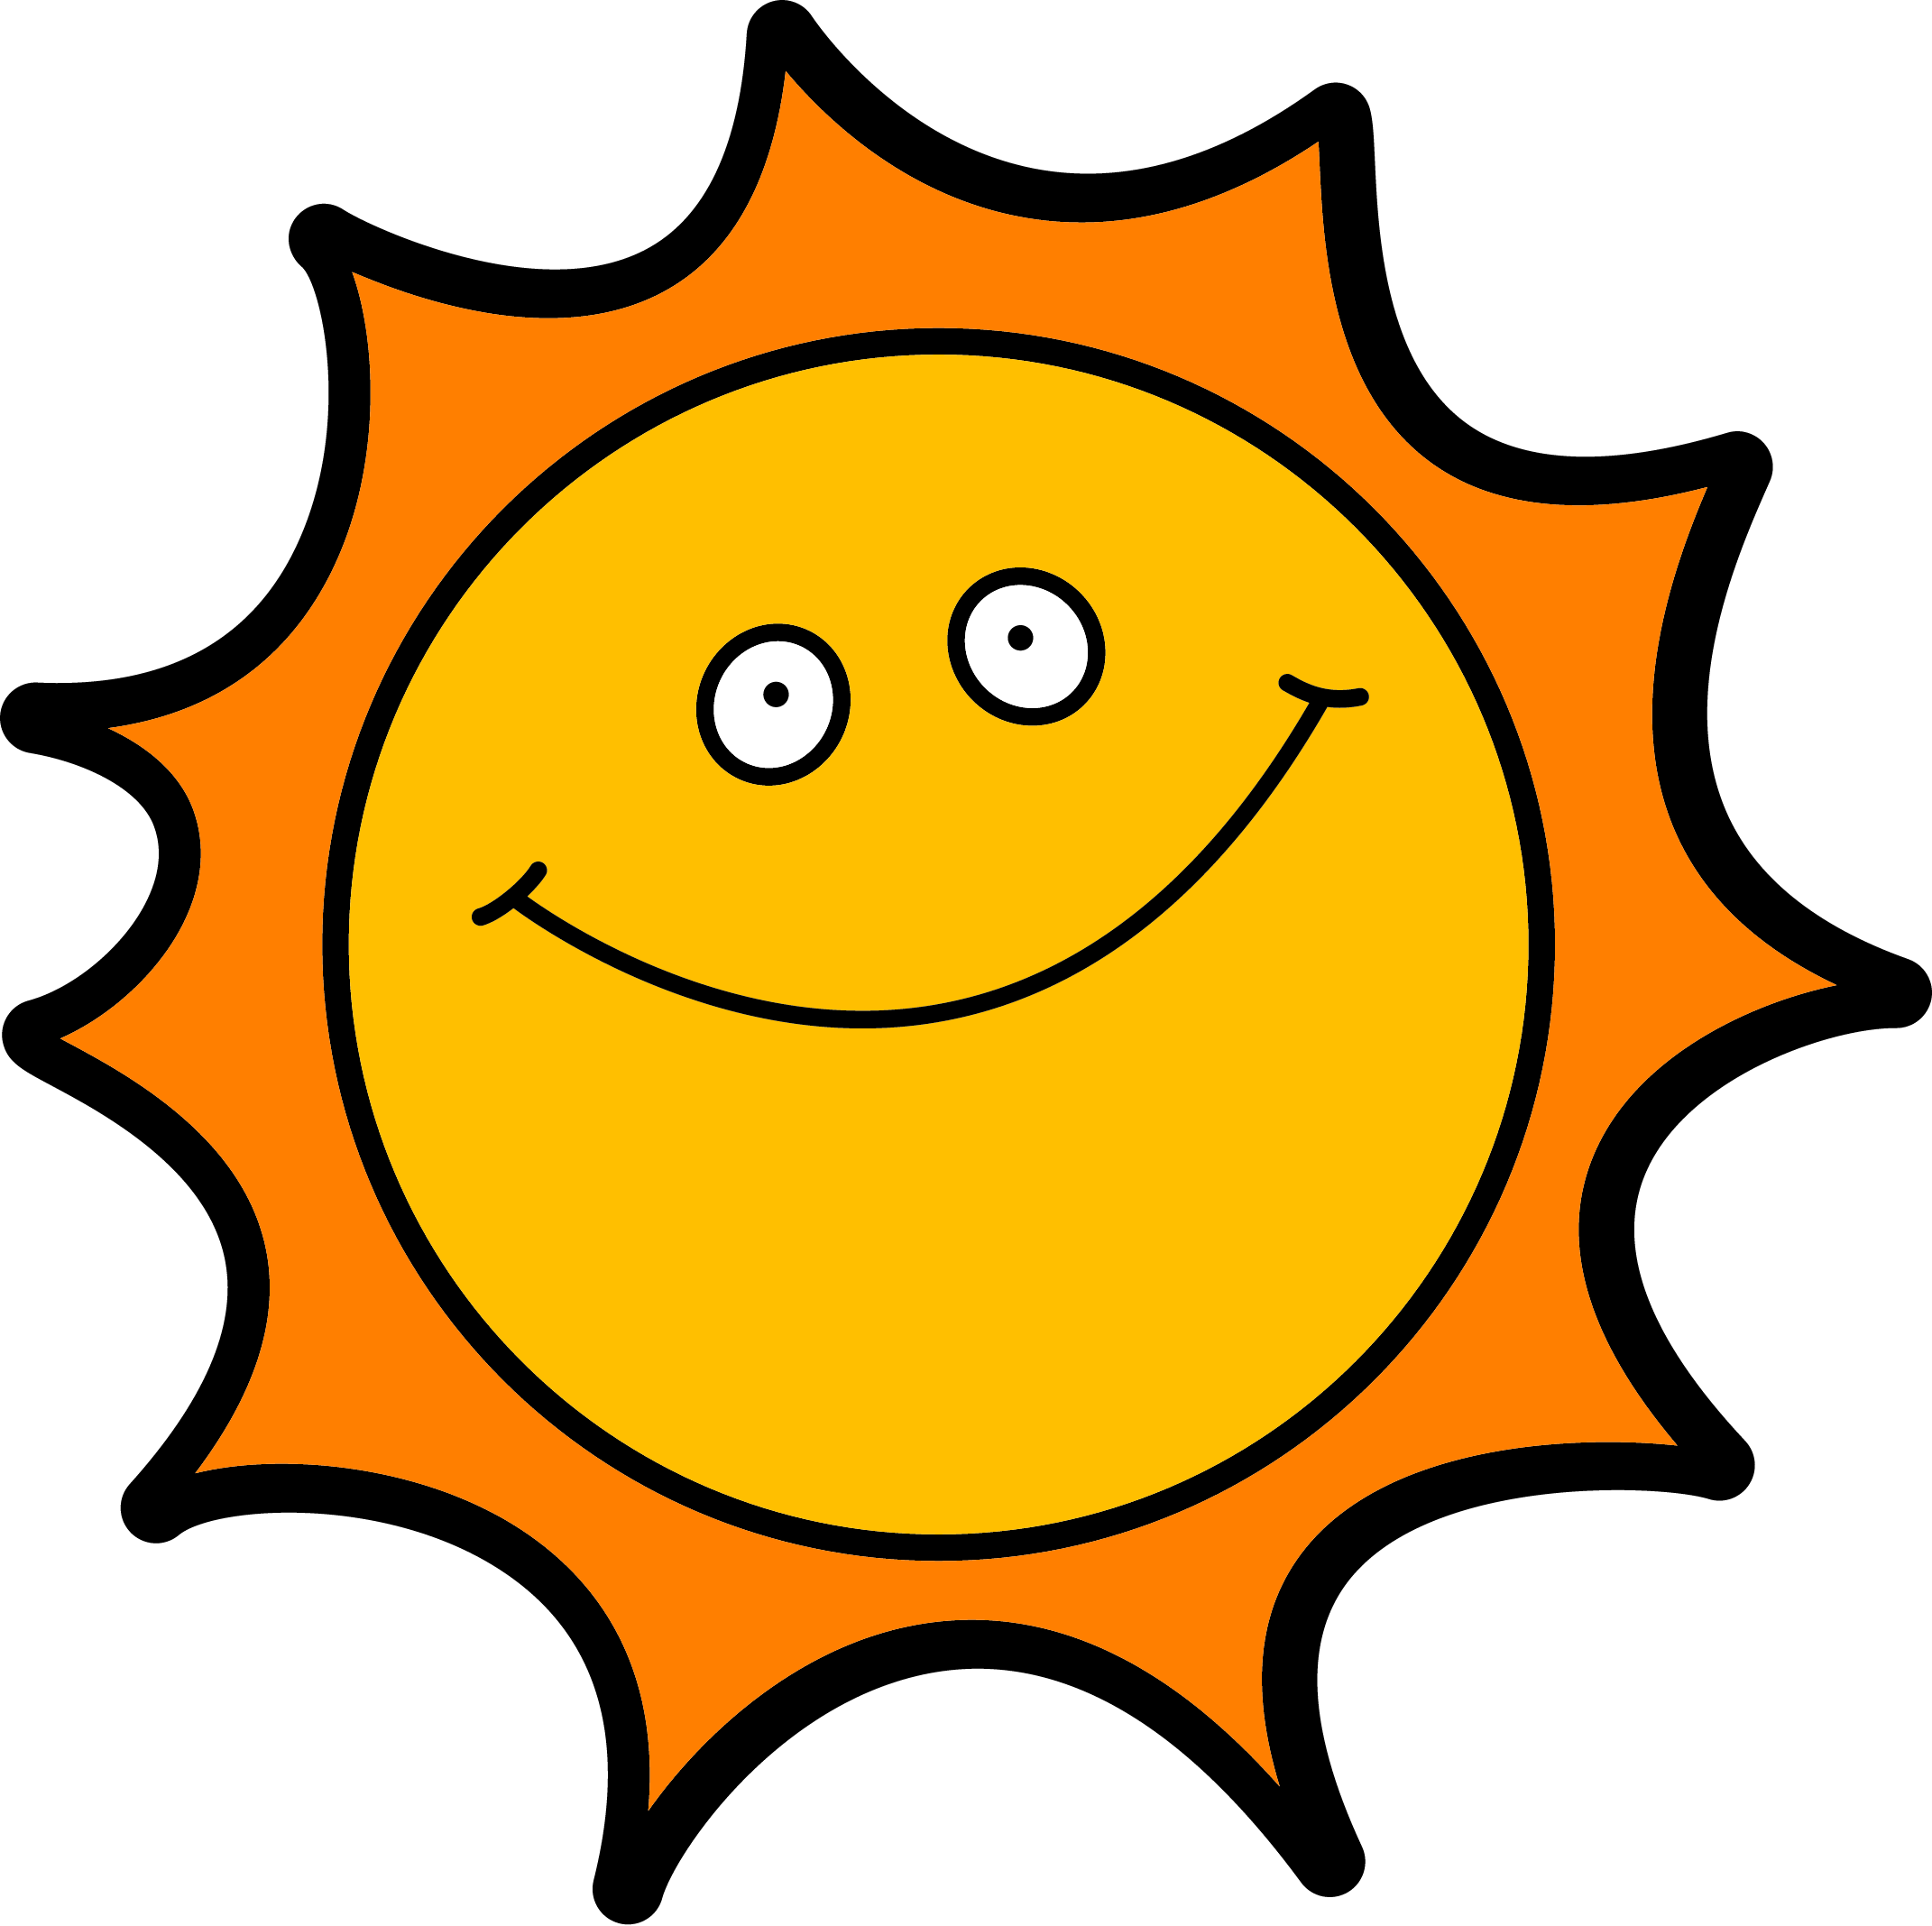 sunshine free sun clipart public domain sun clip art images and 5 rh clipart info free clipart and images of women fellowship free clipart and pictures